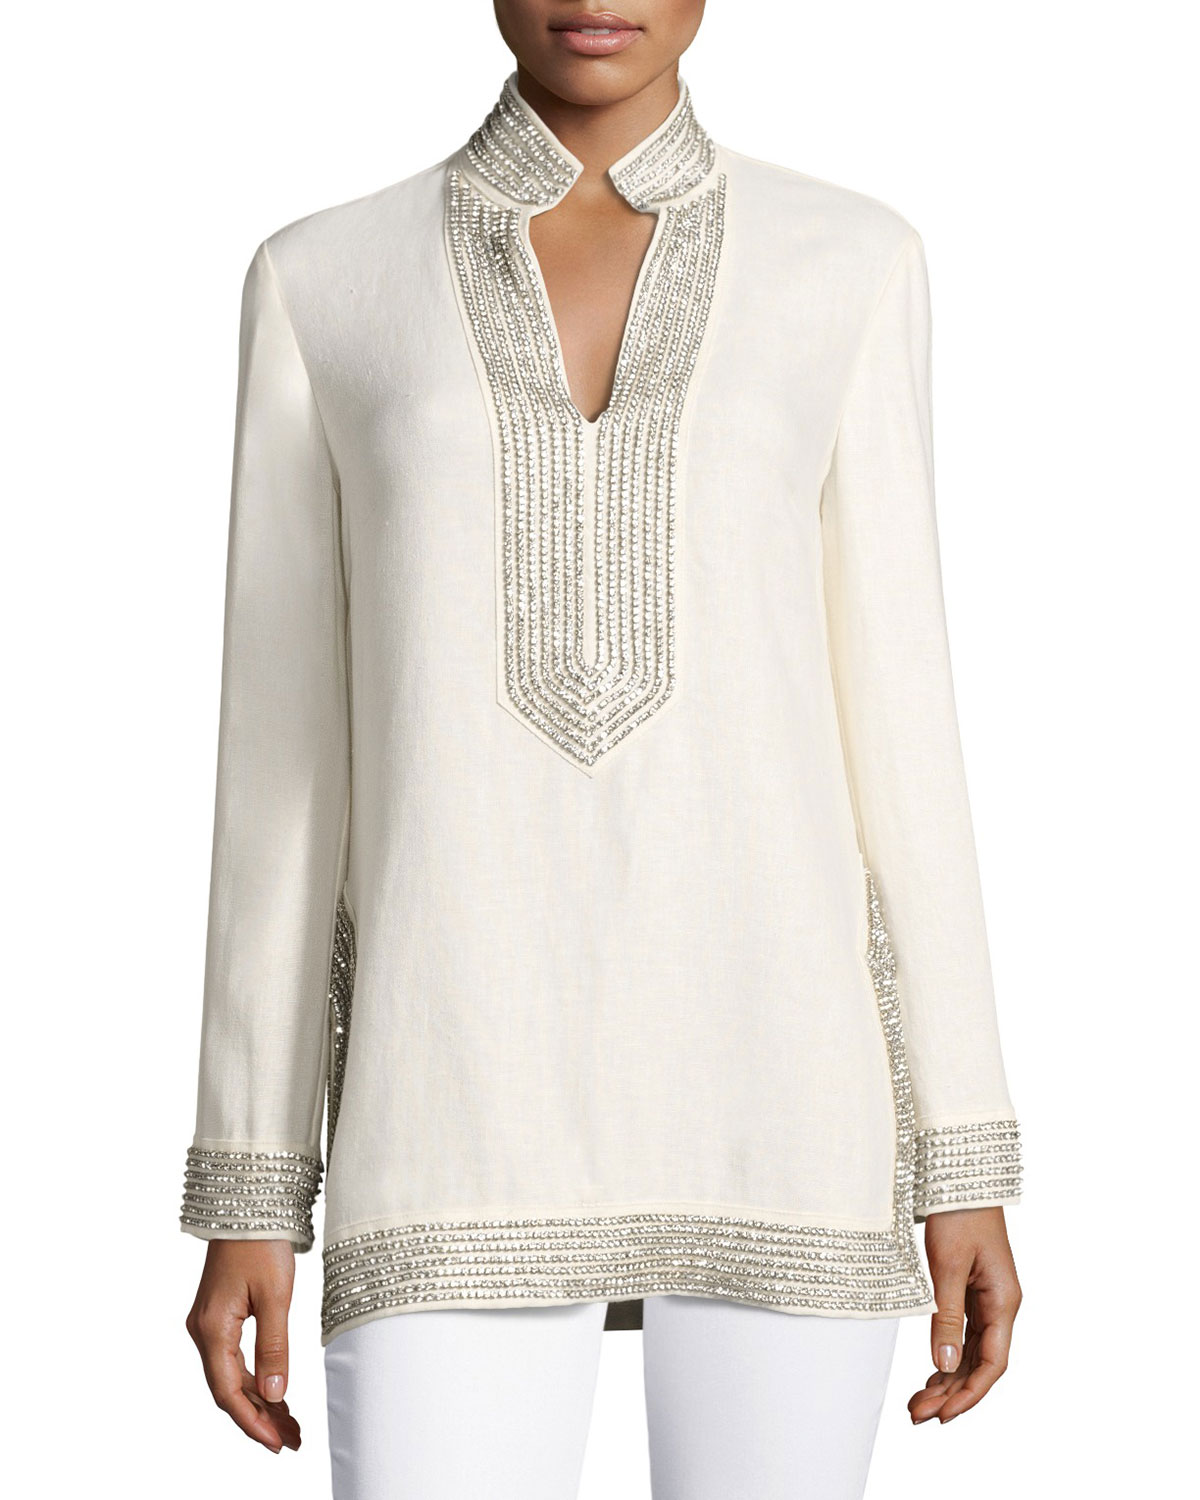 95f1289a2a1112 Tory Burch Crystal-Embellished Linen Tunic